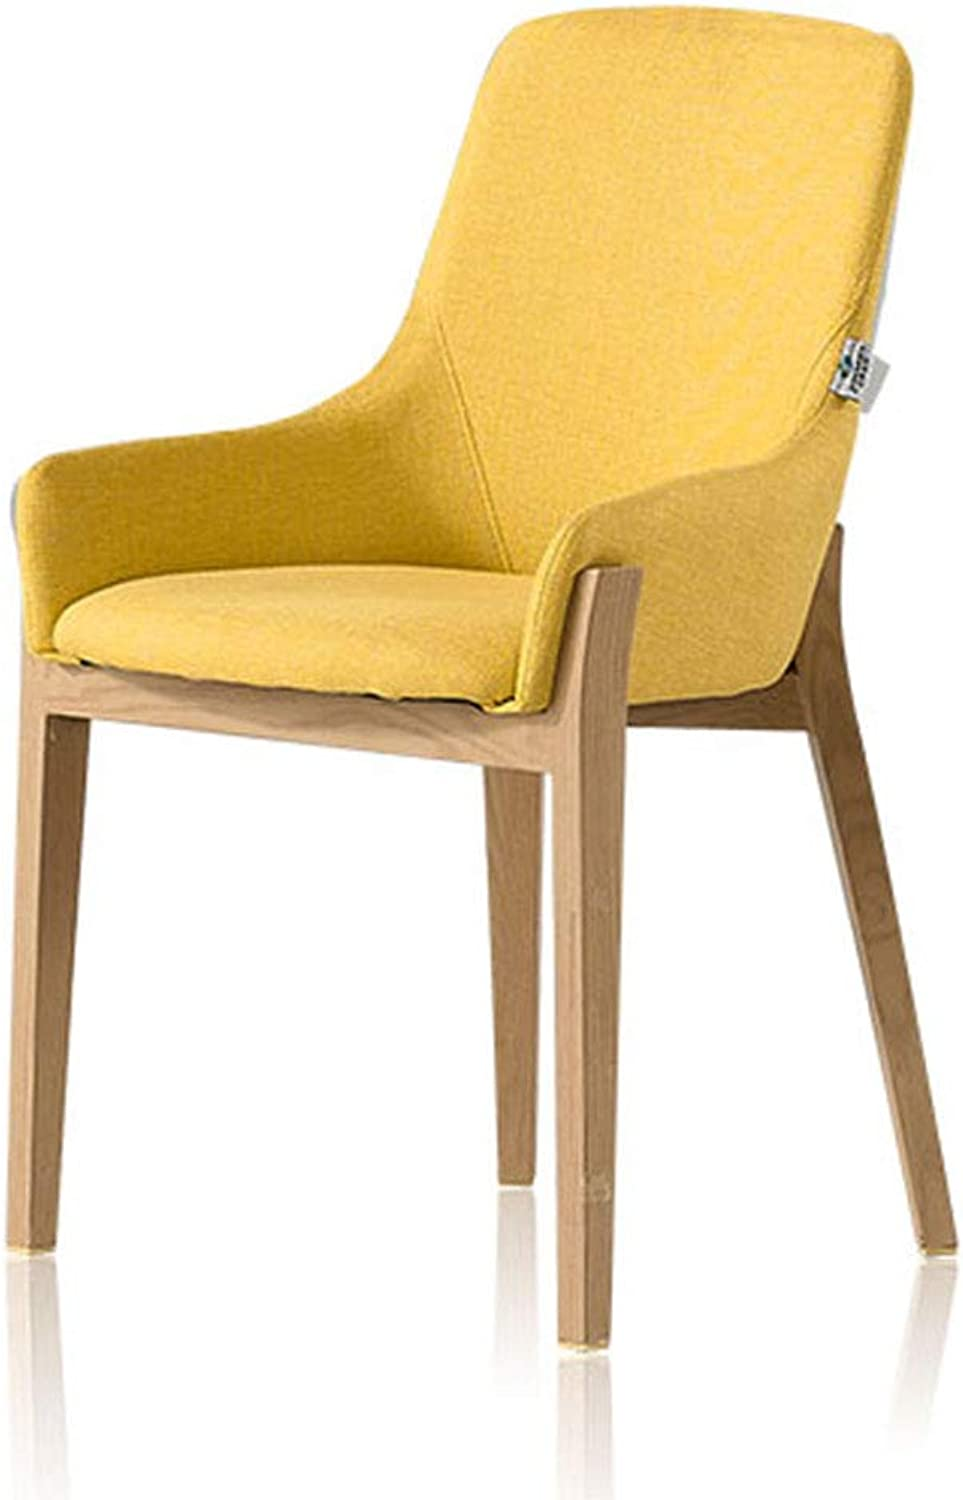 Chairs Dining Chair Solid Wood Chair Dining Room Kitchen Chair backrest Chair (color   Yellow, Size   52  52  81cm)